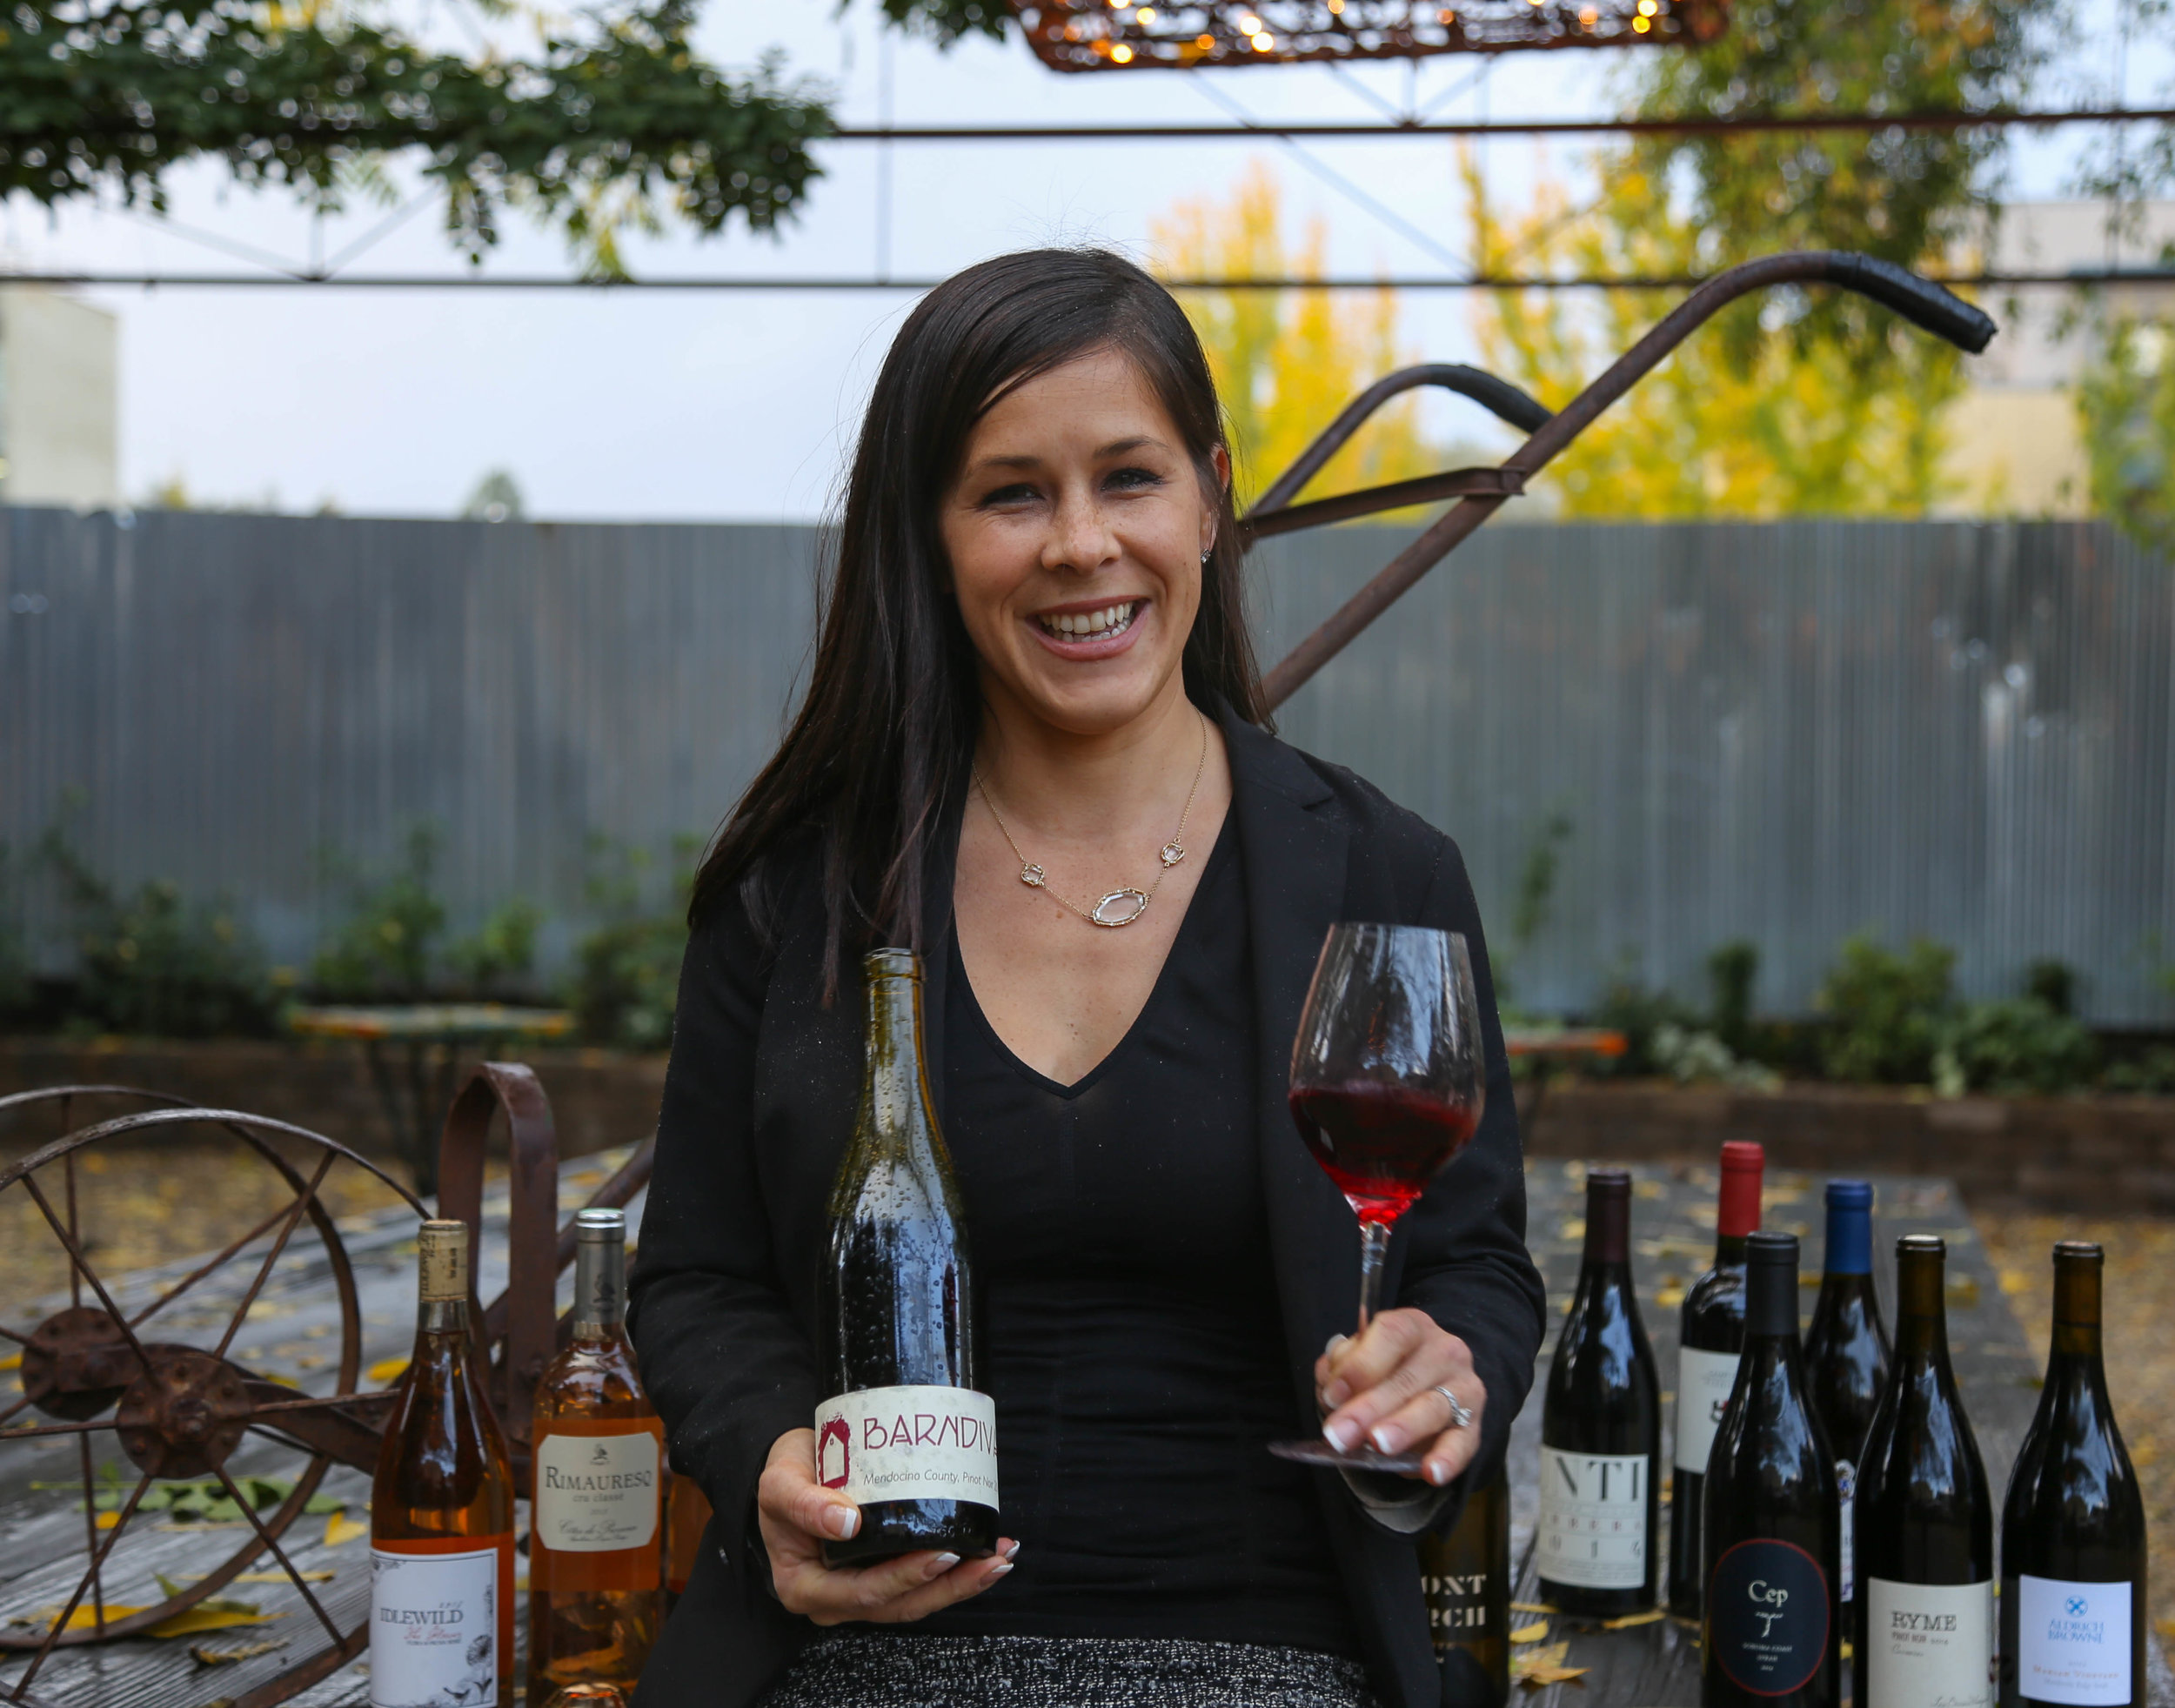 Leading the team behind The Somm's Table, Alexis Iaconis, with some of our first picks.